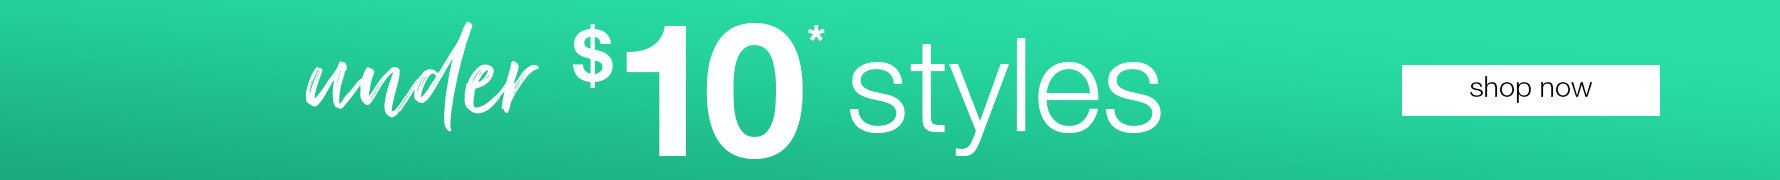 Styles under $10 at Rivers